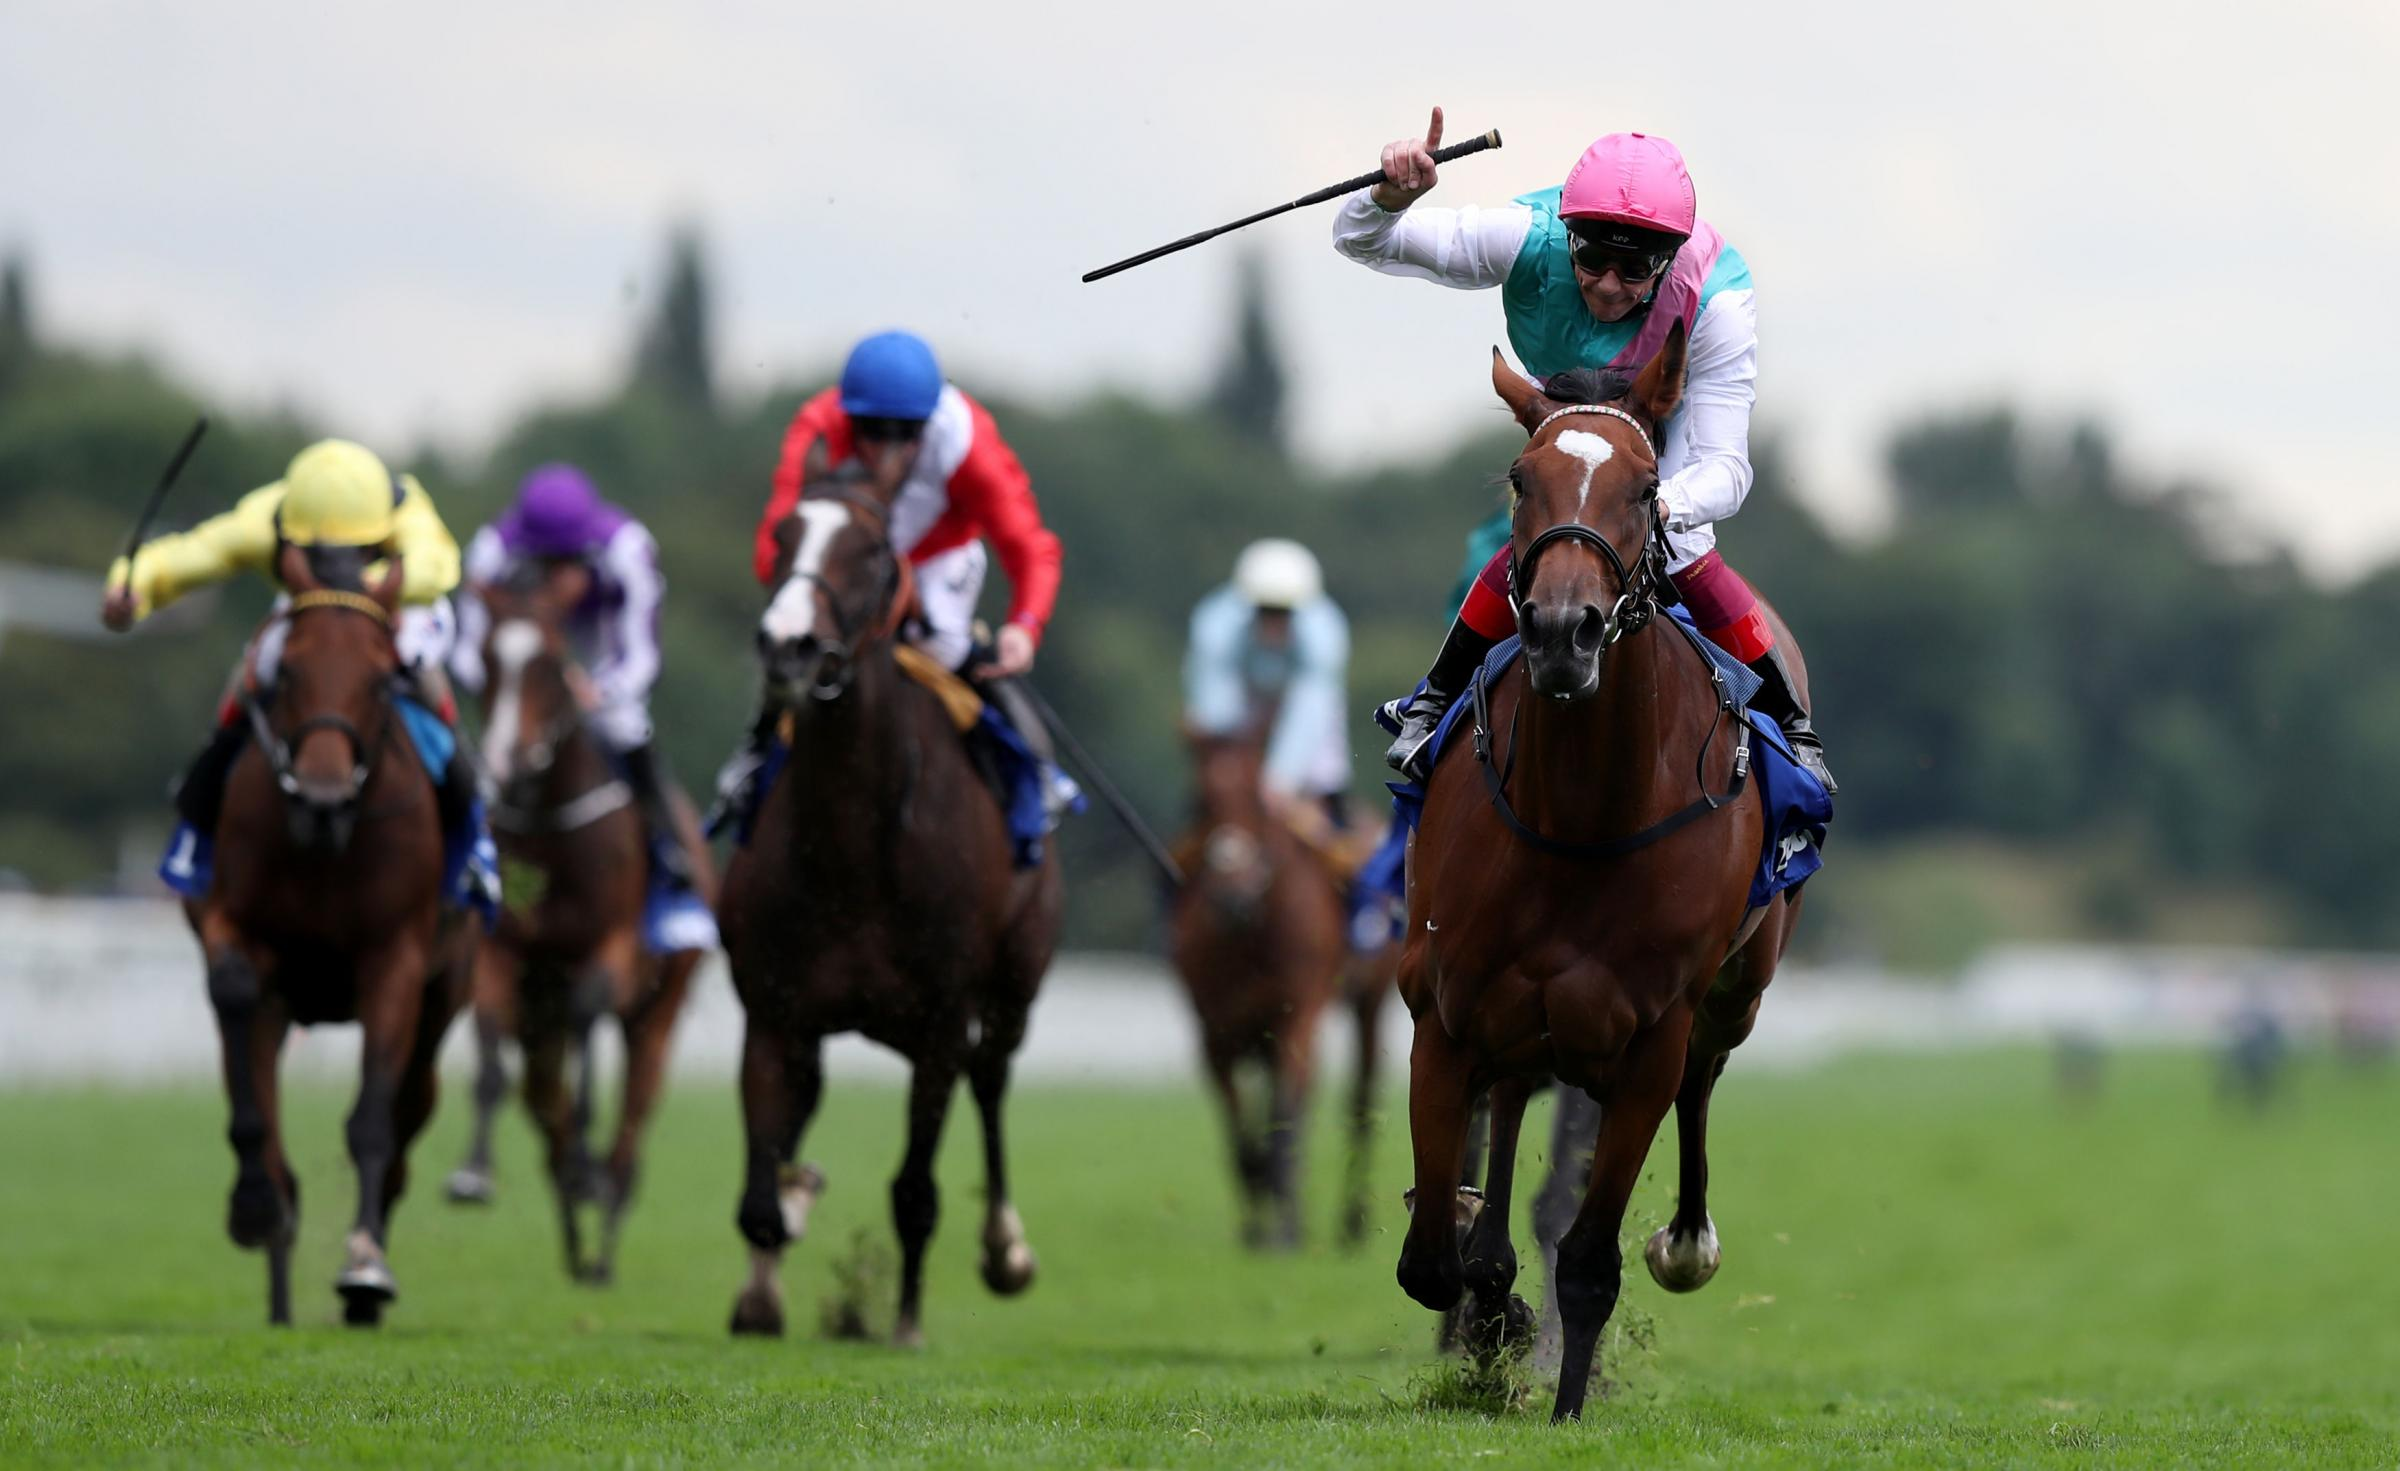 Enable ridden by Frankie Dettori (front right) wins The Darley Yorkshire Oaks during Darley Yorkshire Oaks and Ladies Day of the Yorkshire Ebor Festival at York Racecourse. PRESS ASSOCIATION Photo. Picture date: Thursday August 24, 2017. See PA story RACI